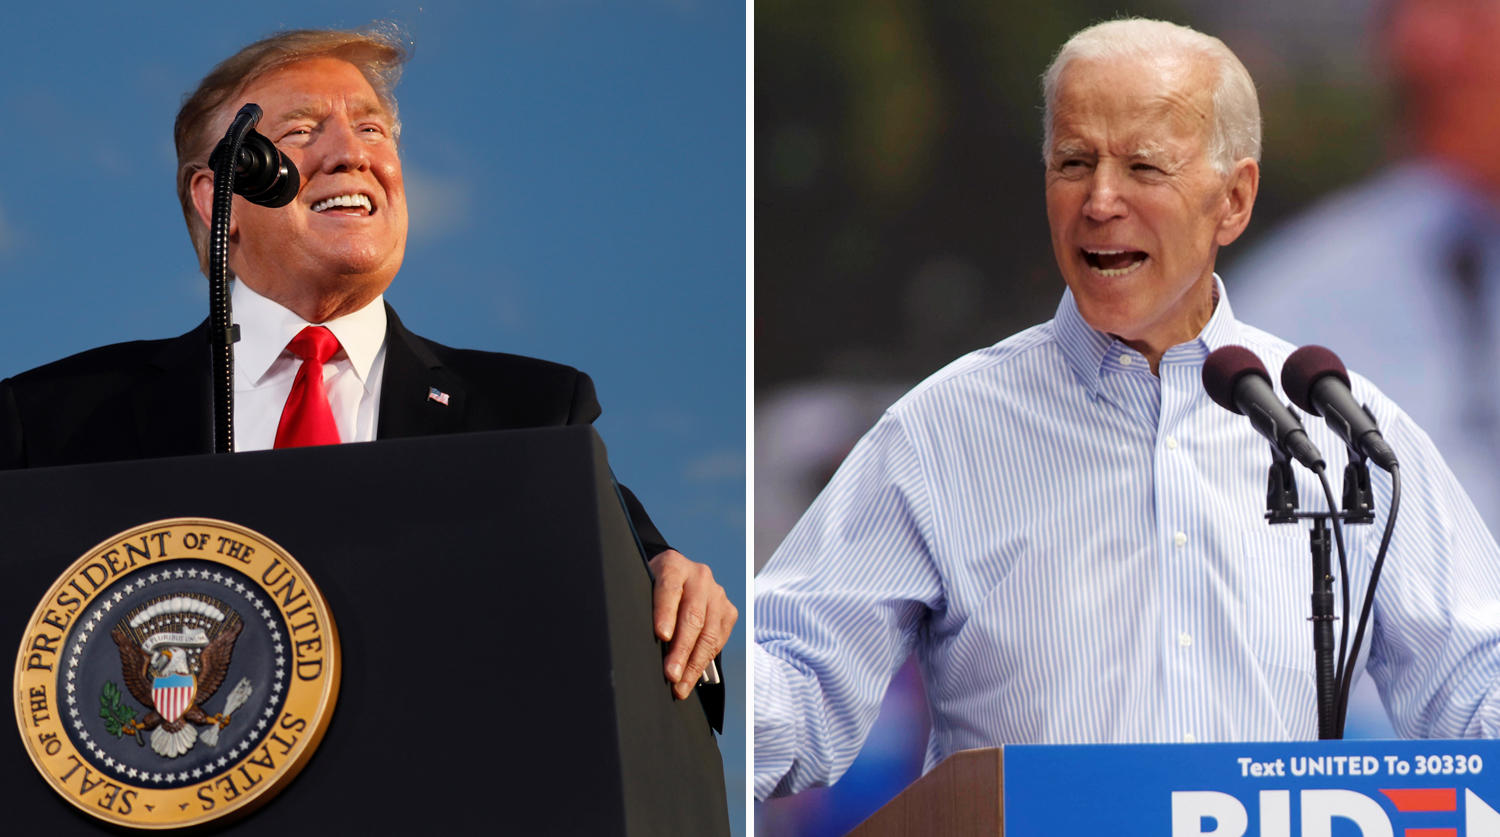 Biden announced the terms of the meeting with Trump